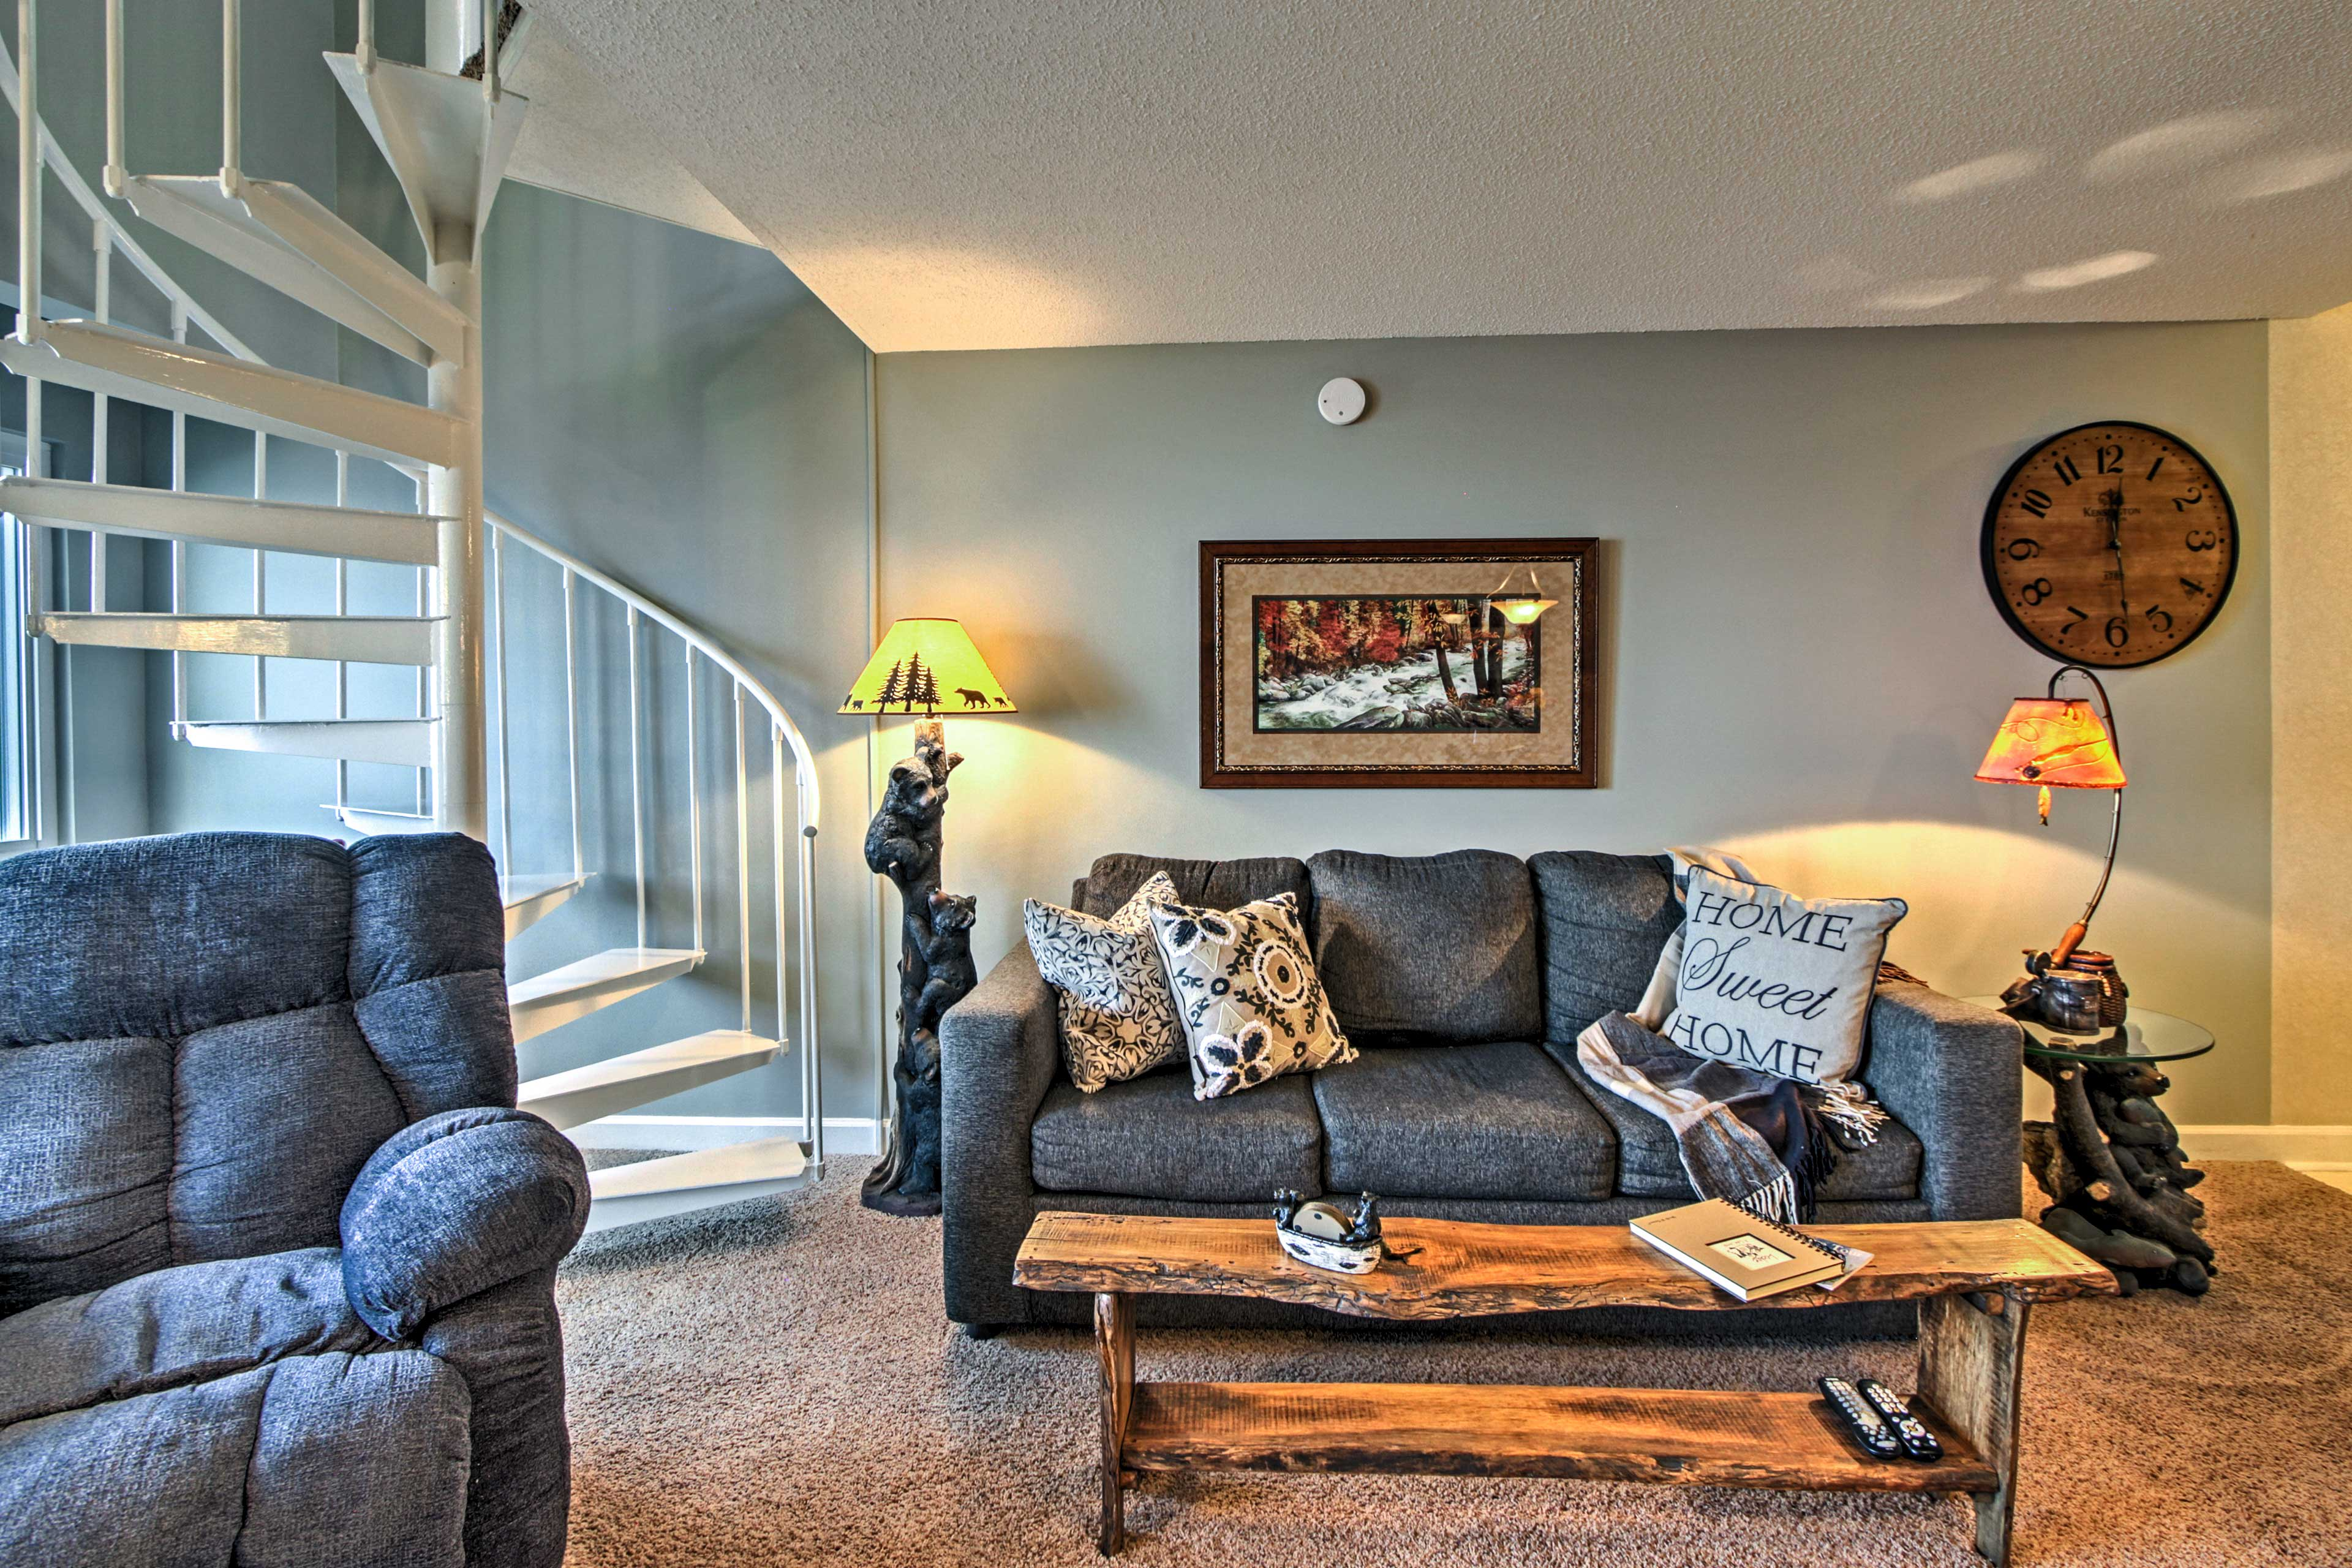 This recently updated condo features Northwoods decor throughout.